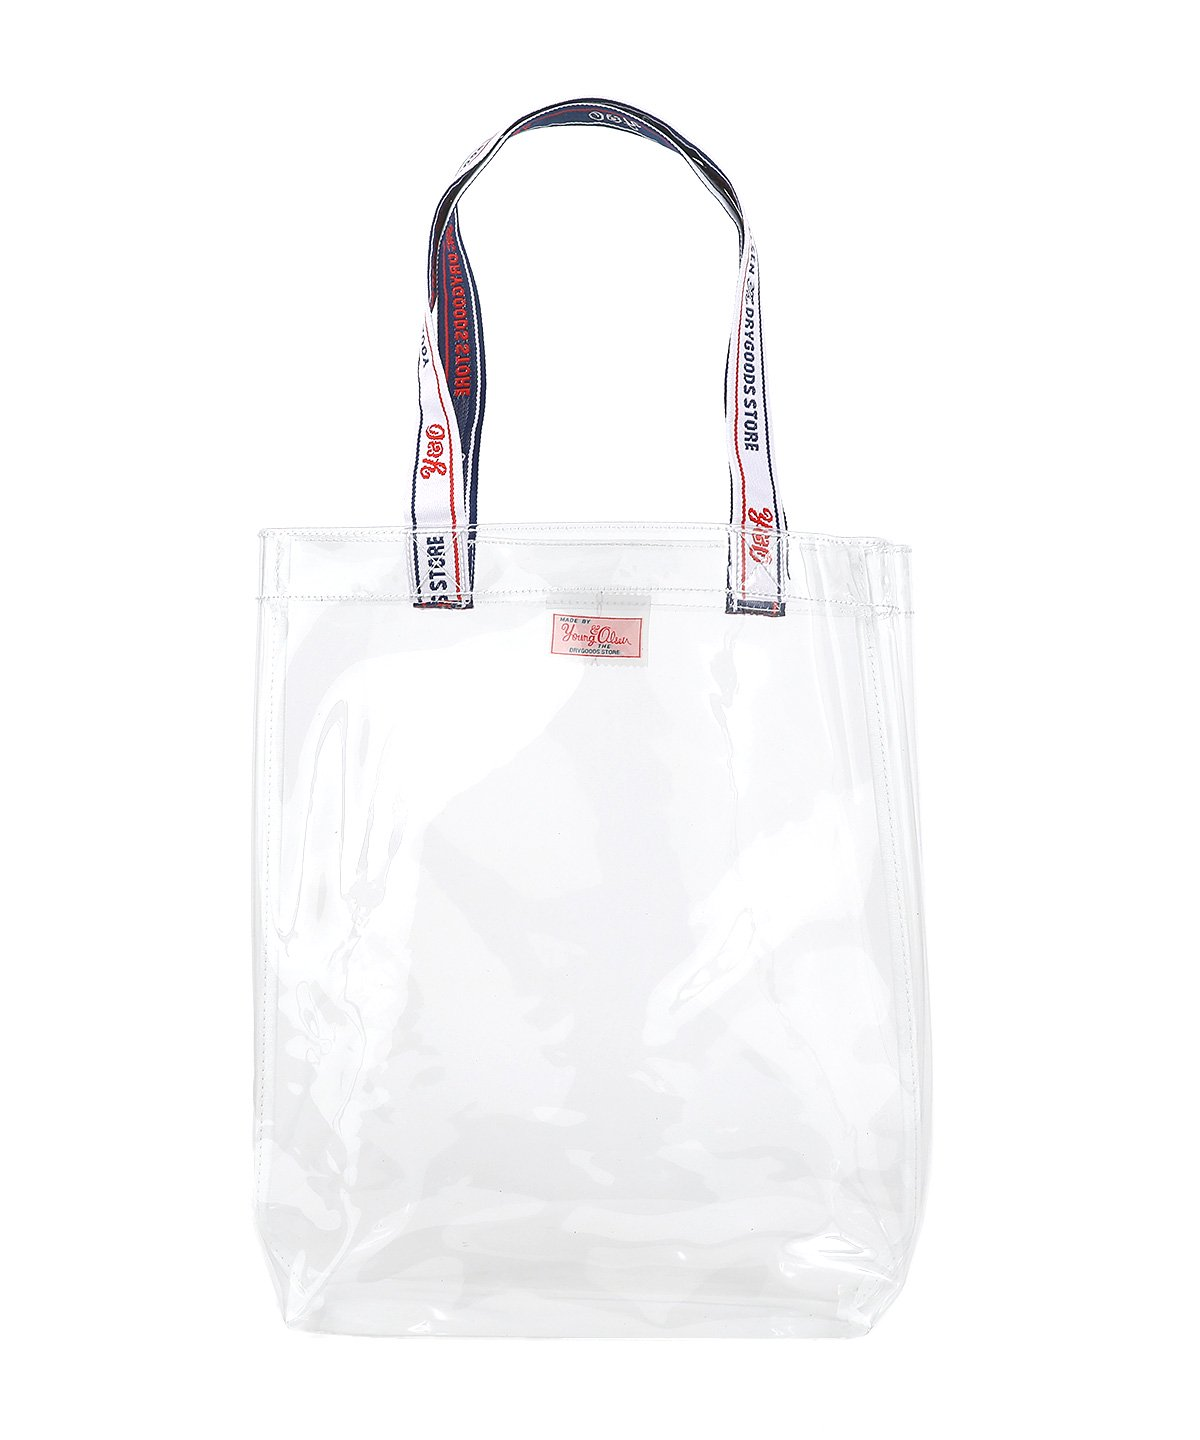 Y&O PP CLEAR BAG